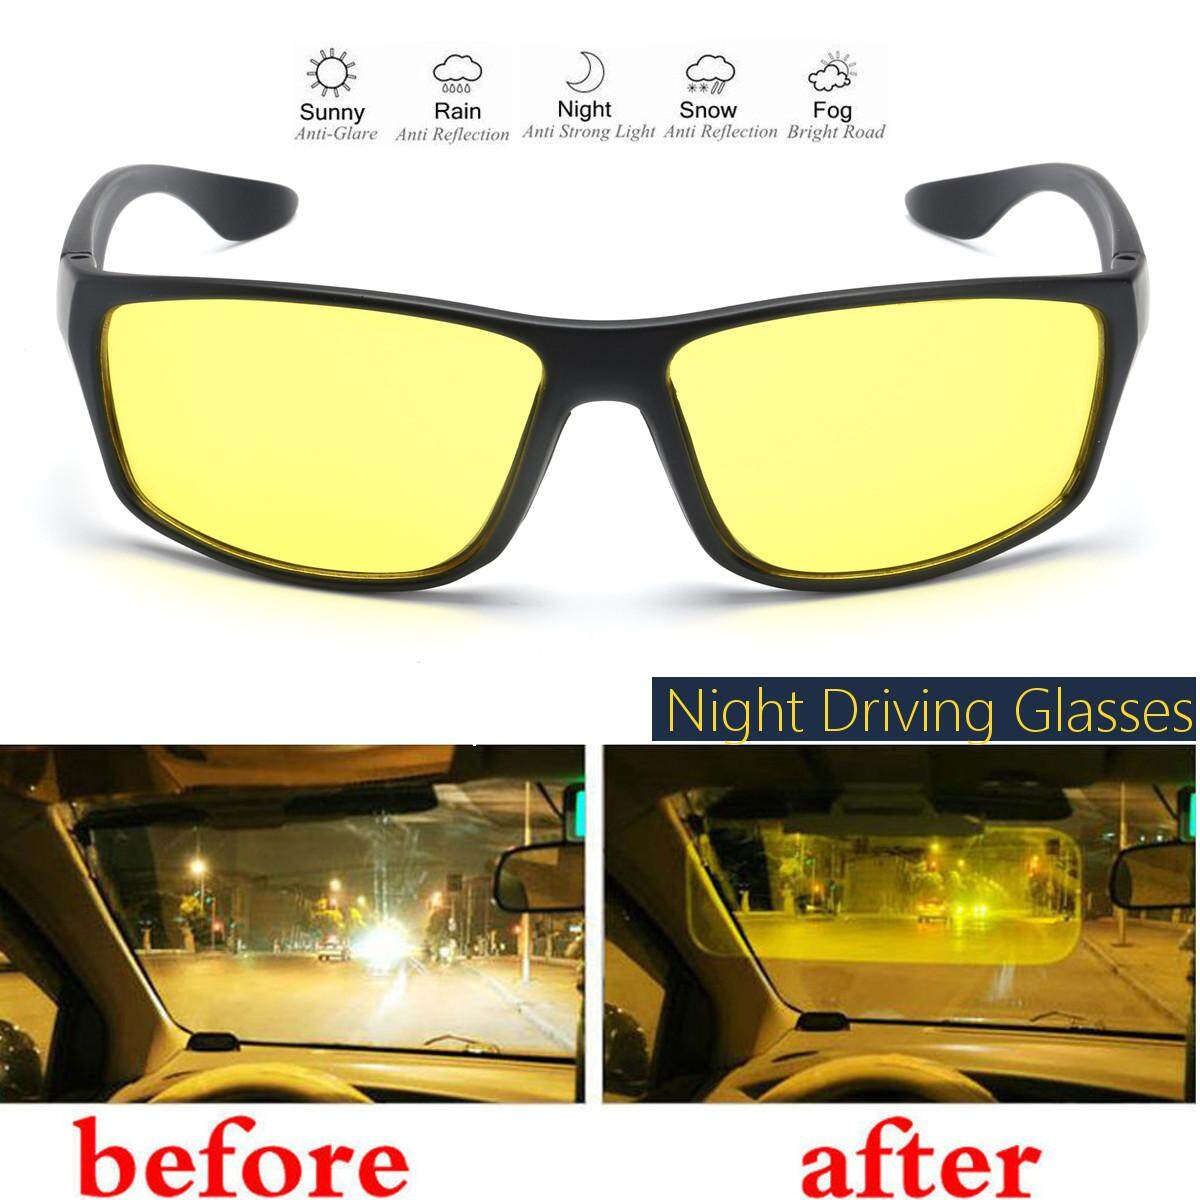 51656b1fefc Night Driving Glasses Anti Glare Vision Driver Safety Sunglasses goggles